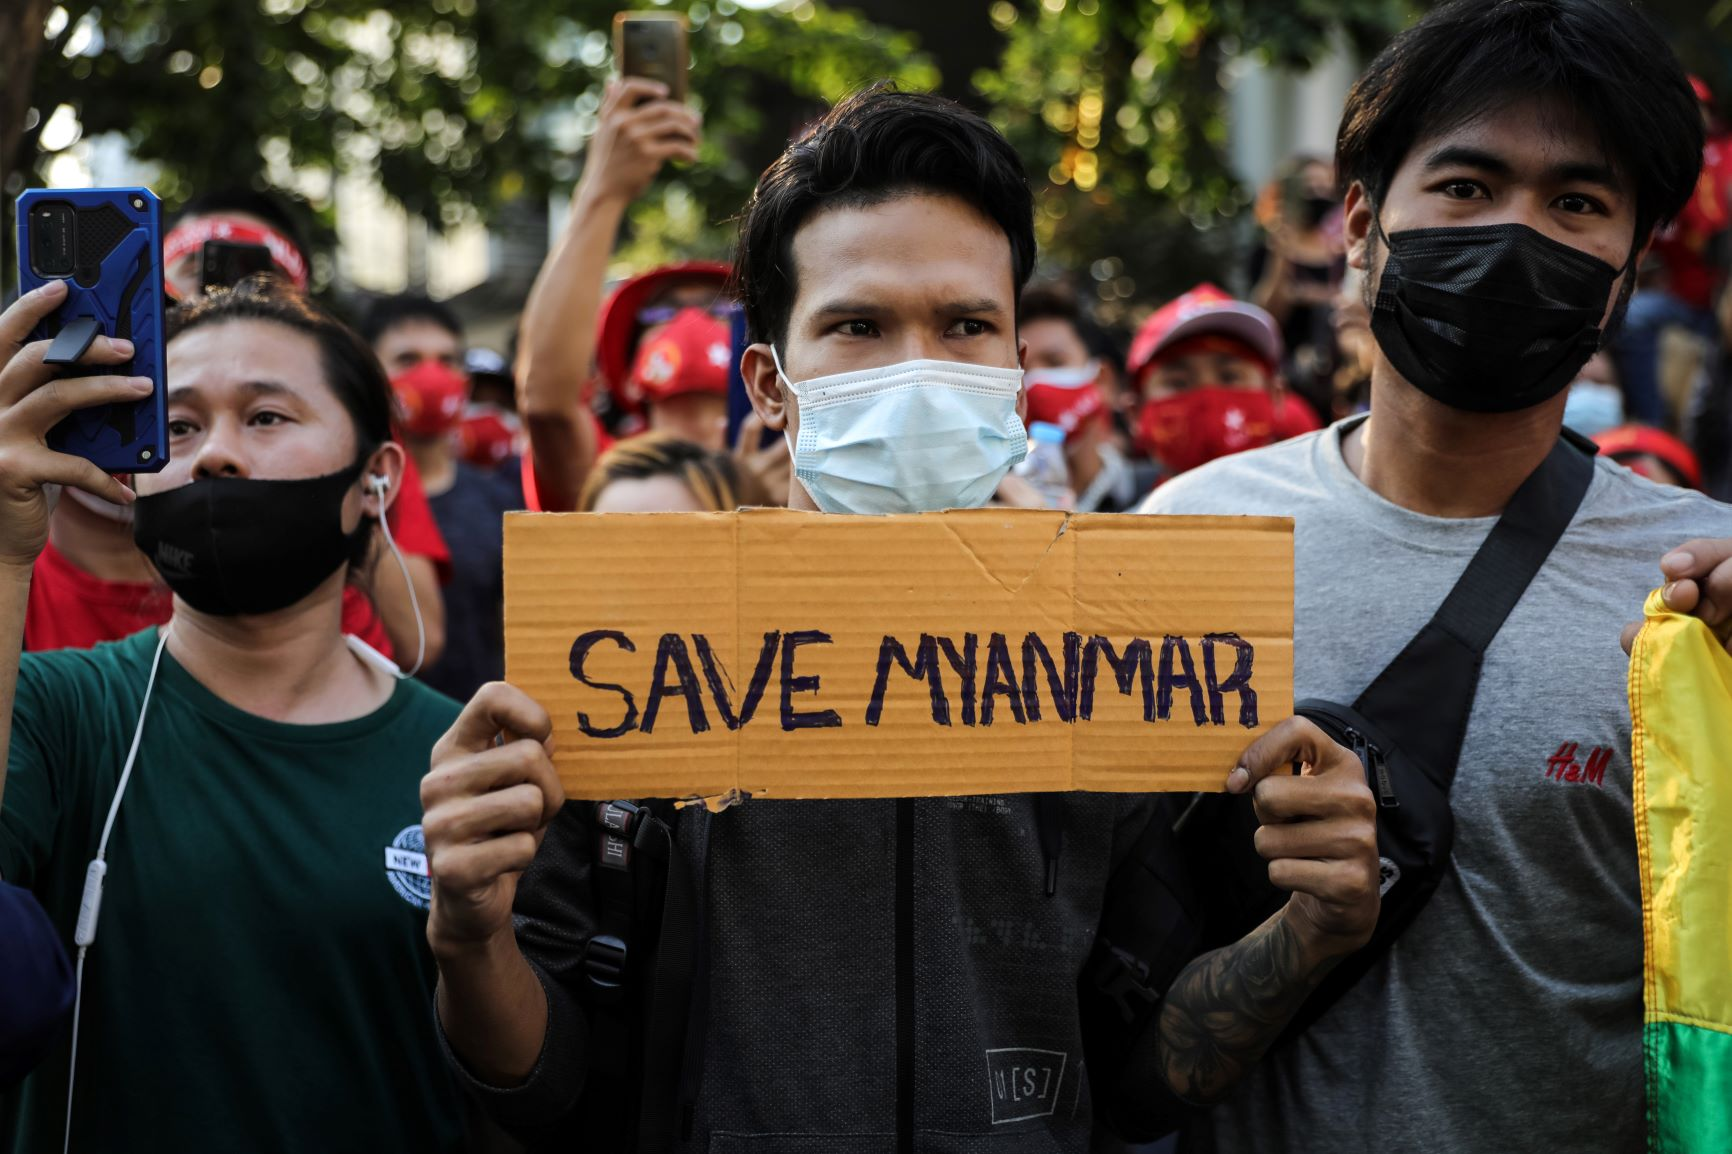 GettyImages 1299737267 Save Myanmar